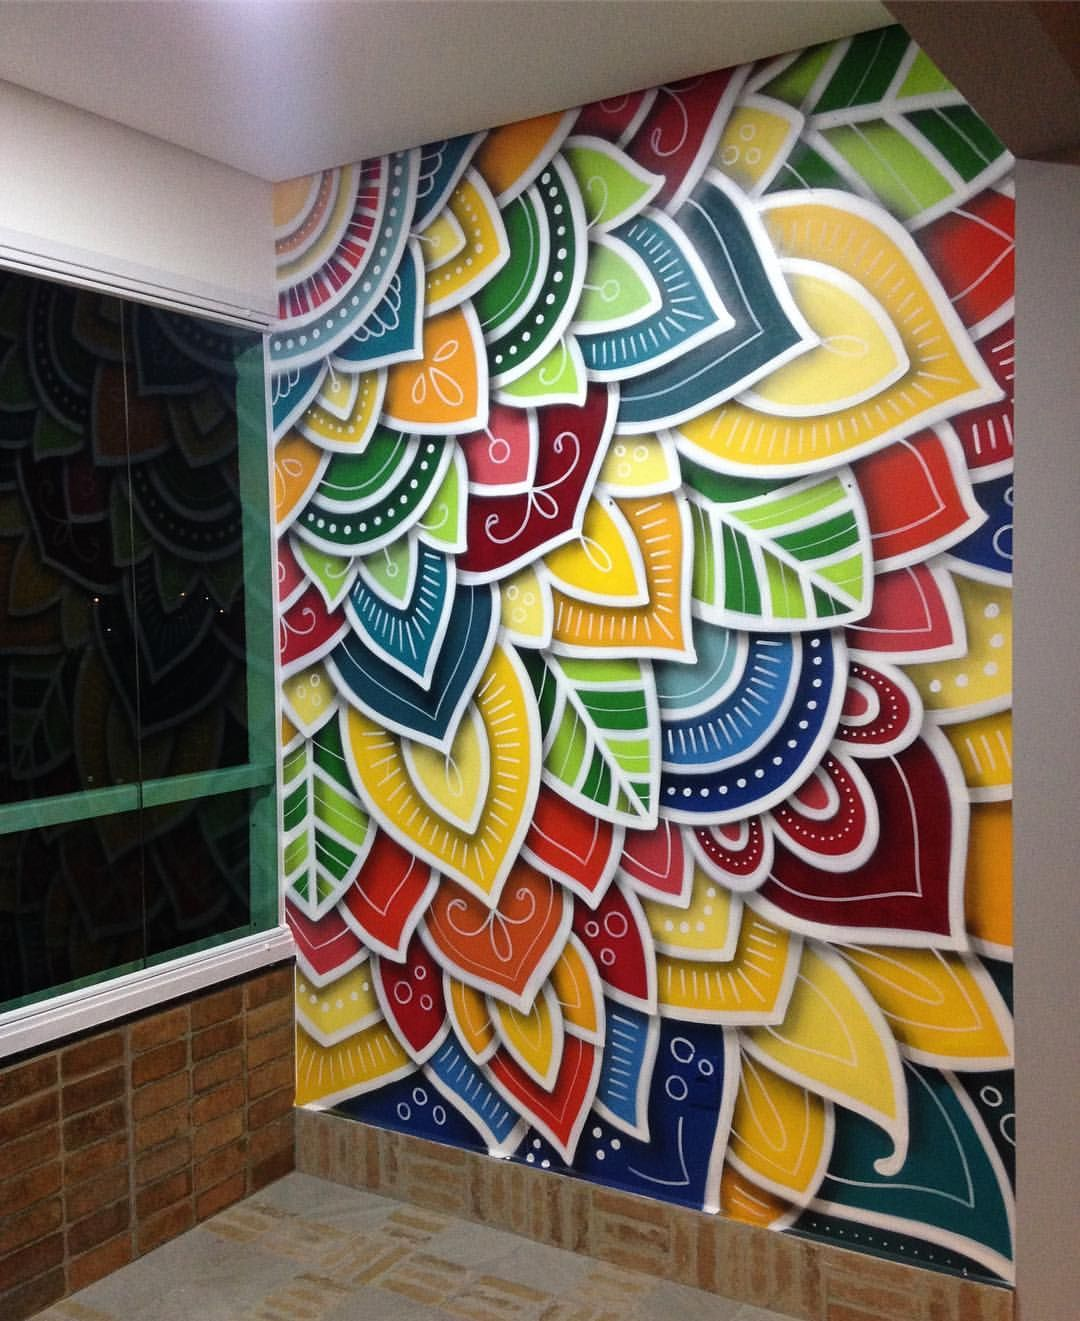 By Danroots Amazing Work With Spray Paints Mandala Wall Art Mural Wall Art Wall Paint Designs